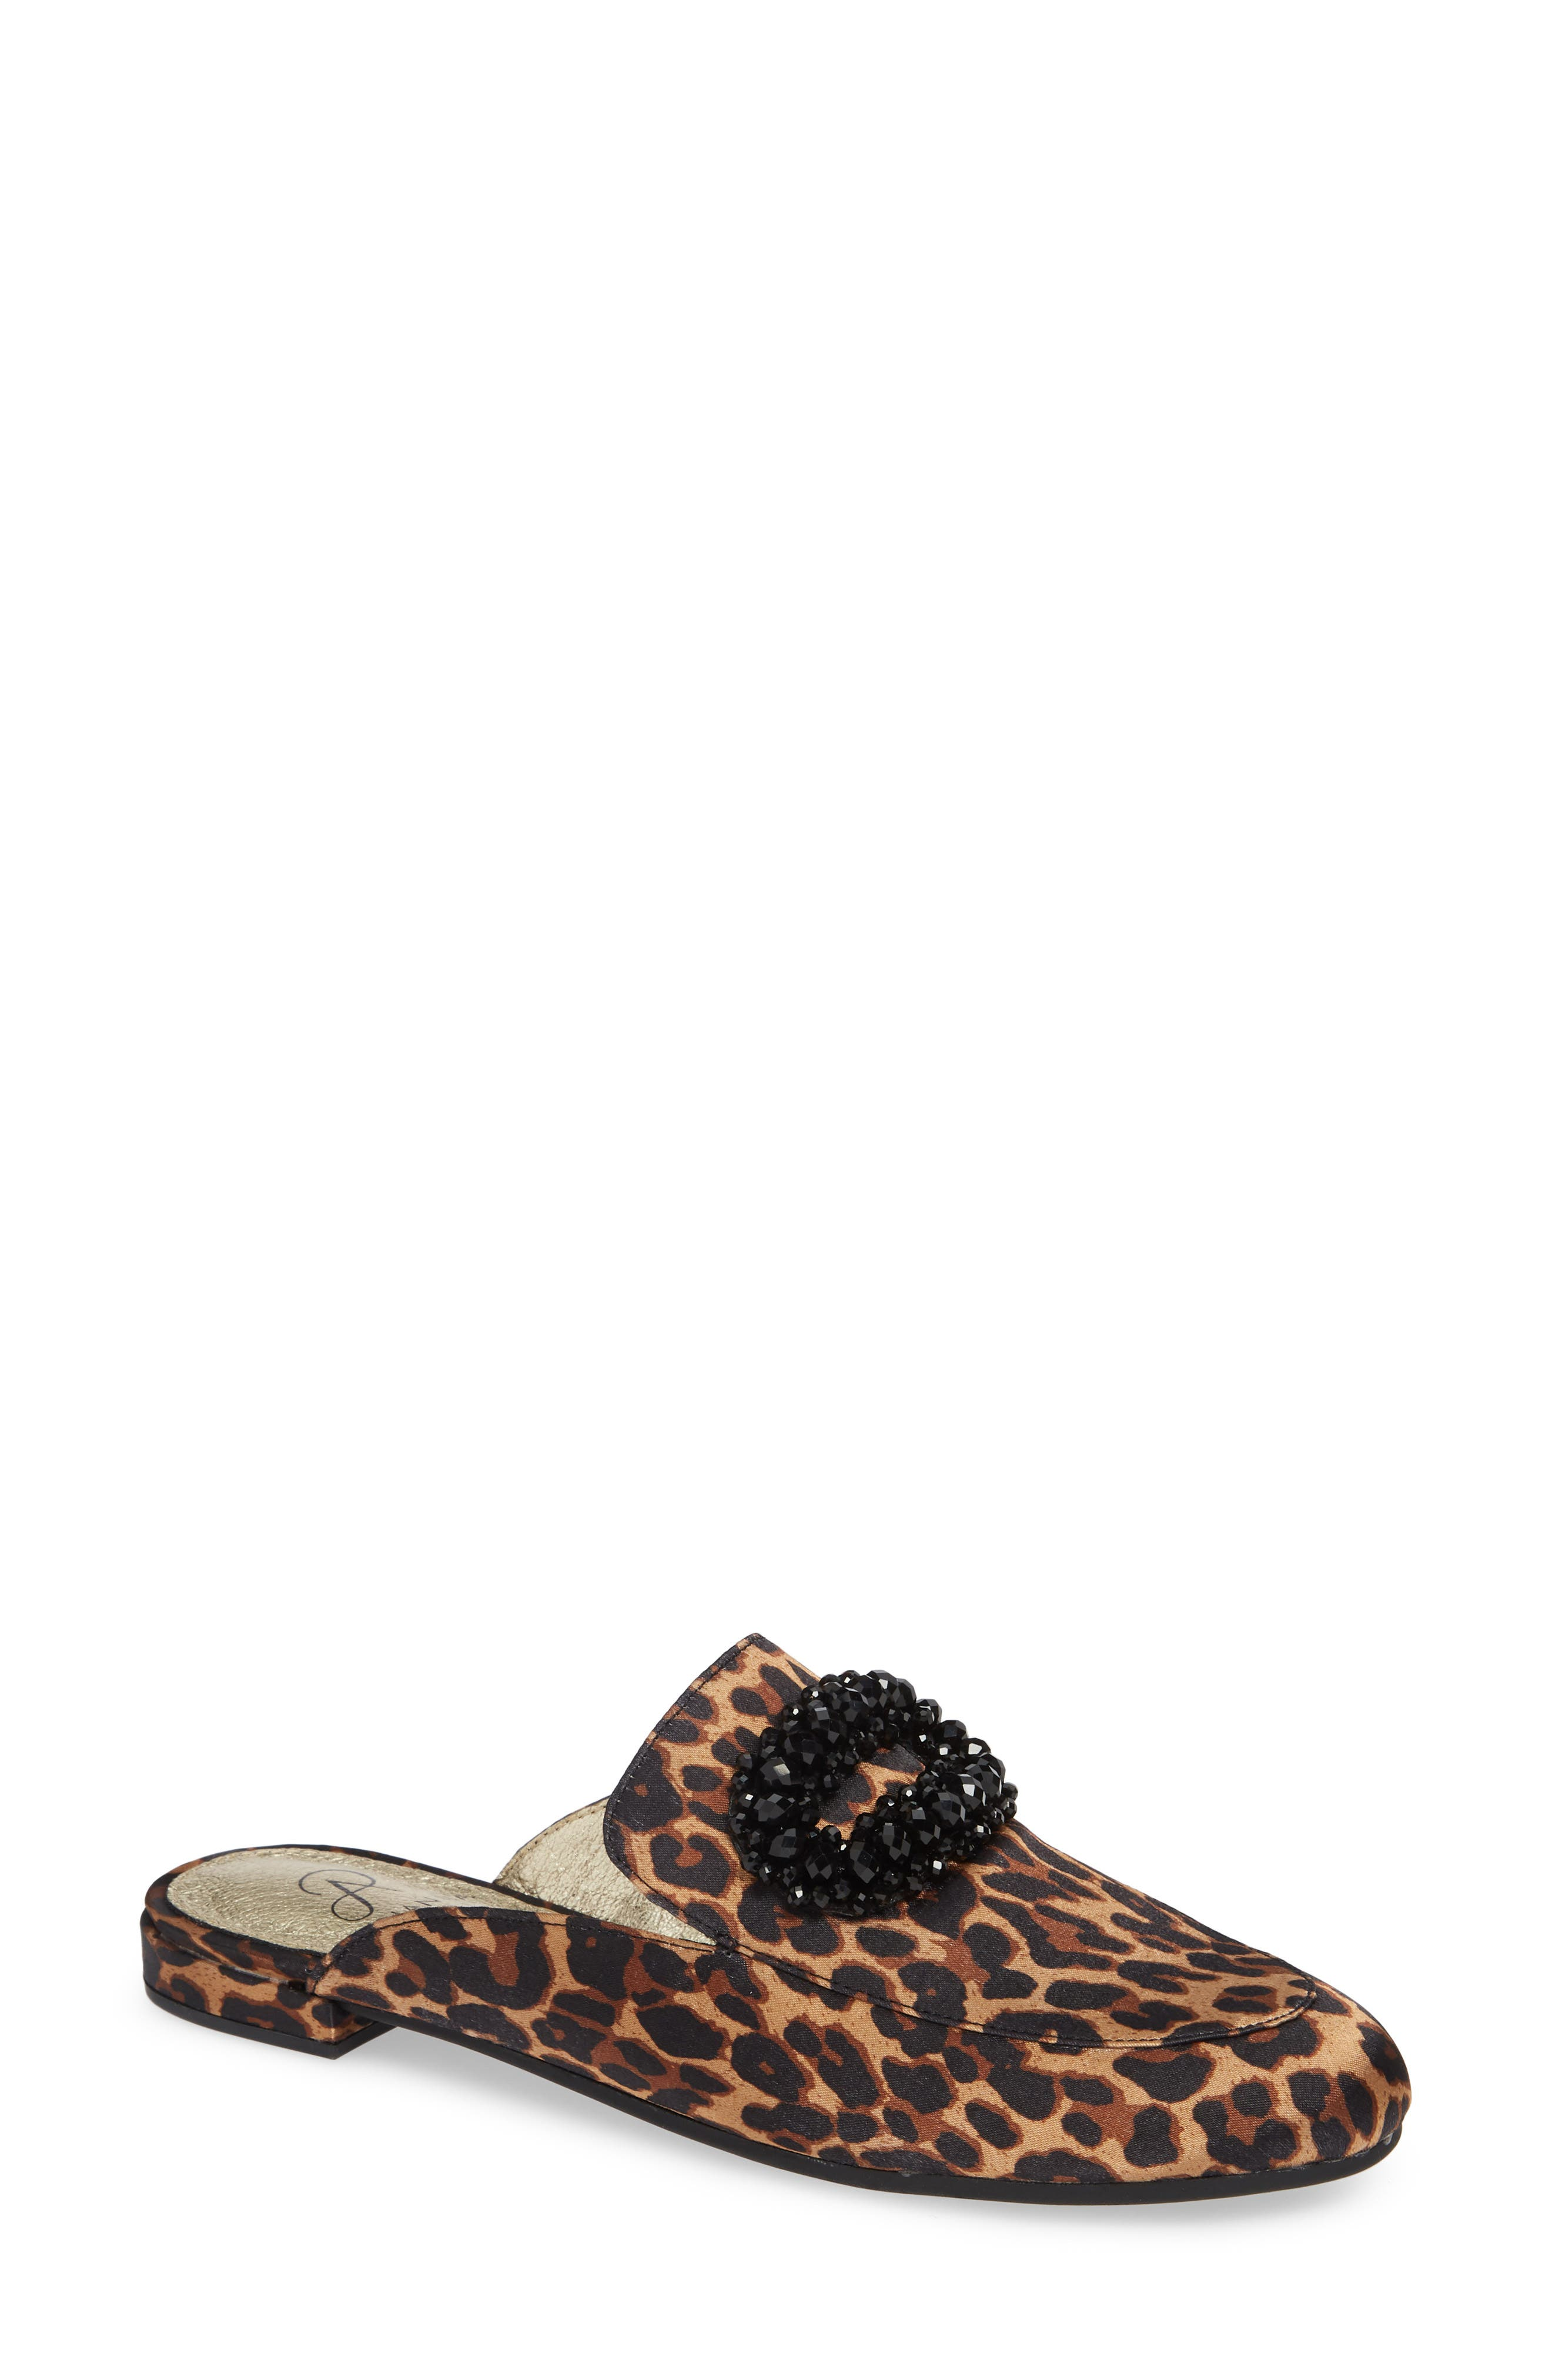 Adrianna Papell Becky Embellished Mule- Brown